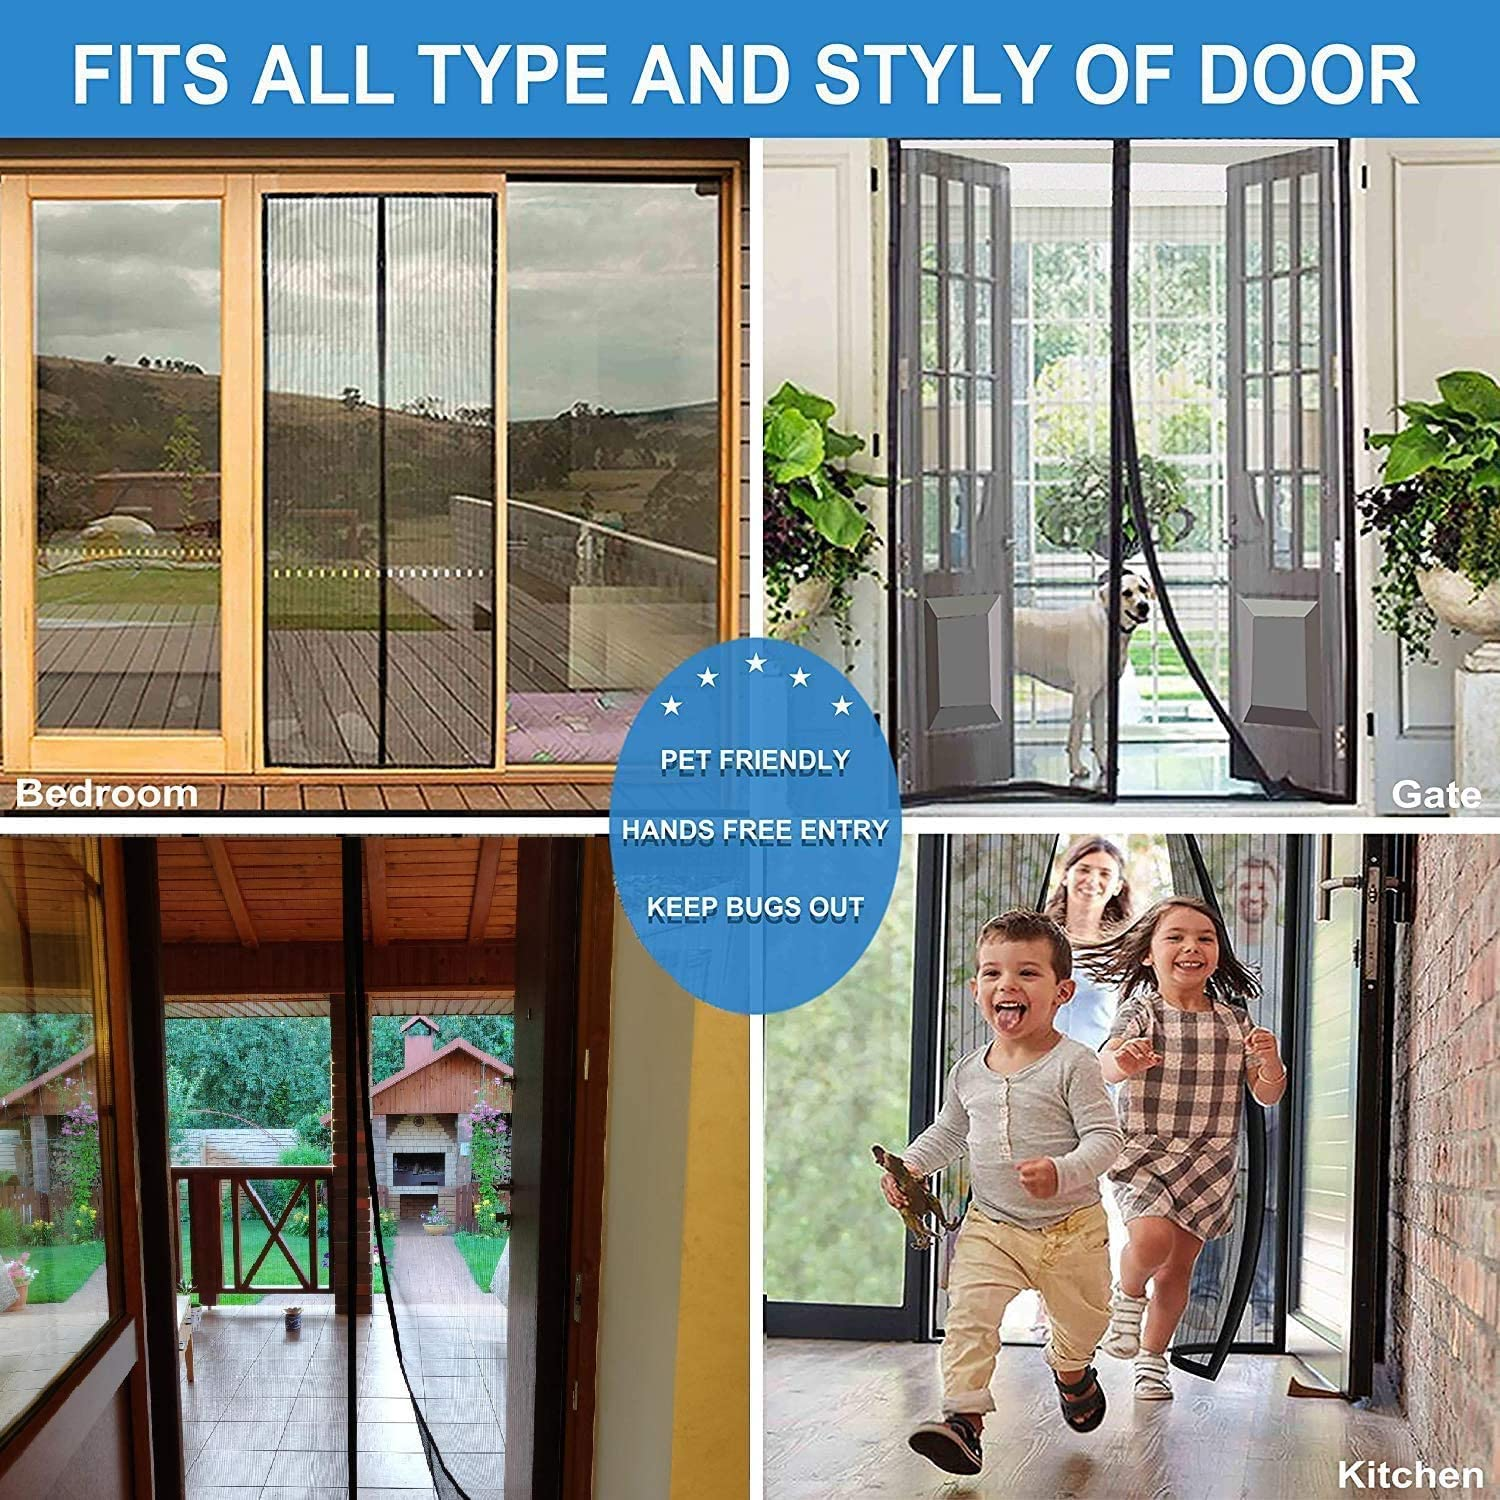 Ciujoy Magnetic Fly Screen Door Keep Insects Out Door Screent 85 X 200CM,No Drilling Required,Magnetic Door Curtains Automatically Close When in and Out for Keep Fresh Air in and Anti Mosquito